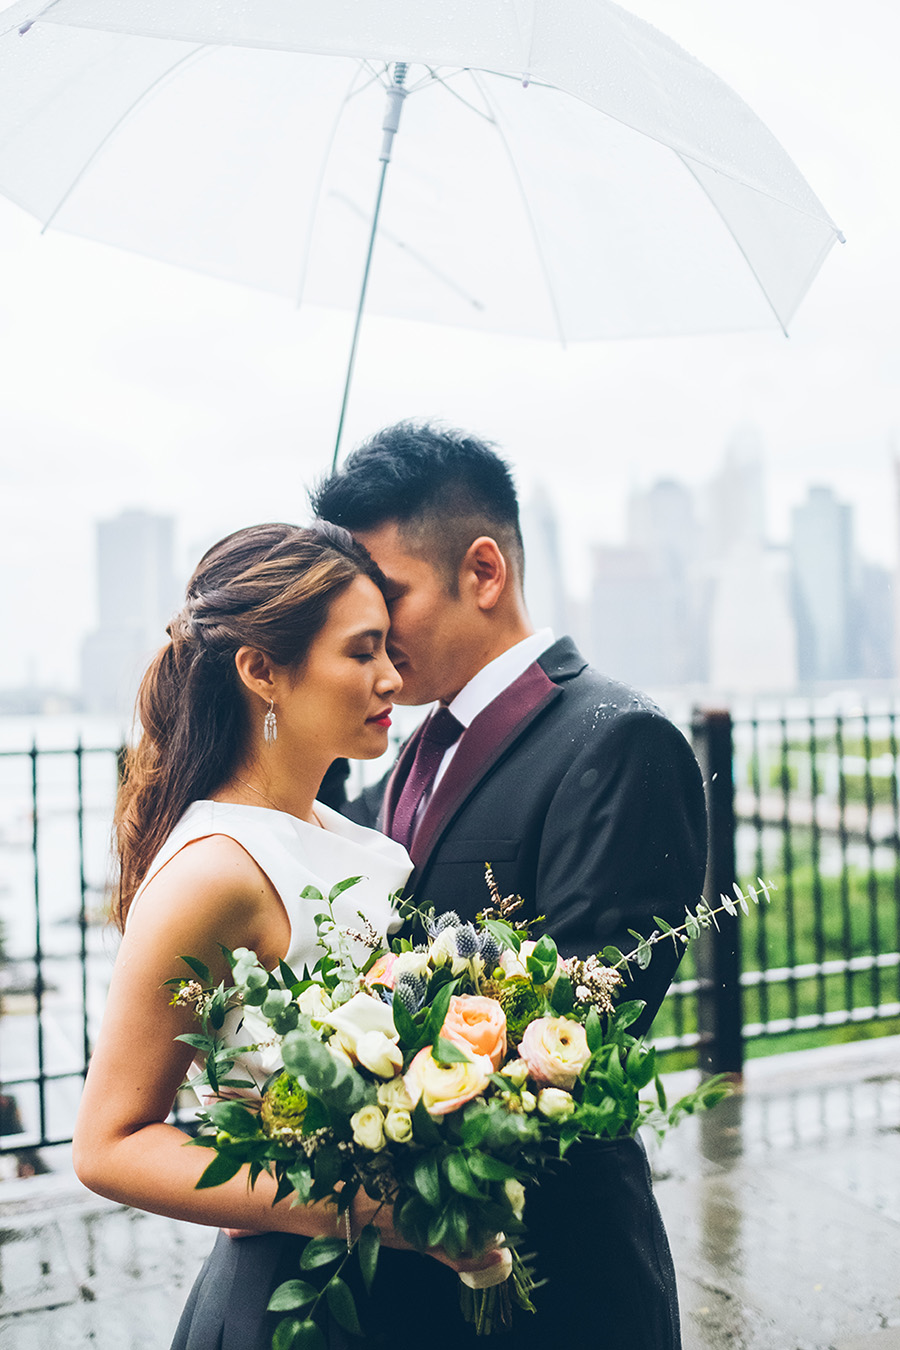 NEW-YORK-CITY-WEDDING-PHOTOGRAPHER-INTIMATE-WEDDING-ELOPEMENT-BROOKLYN-PROMENADE-CITYHALL-MANHATTAN-BROOKLYN-WEDDING-PHOTOGRAPHY-JackieAaron-0030.jpg